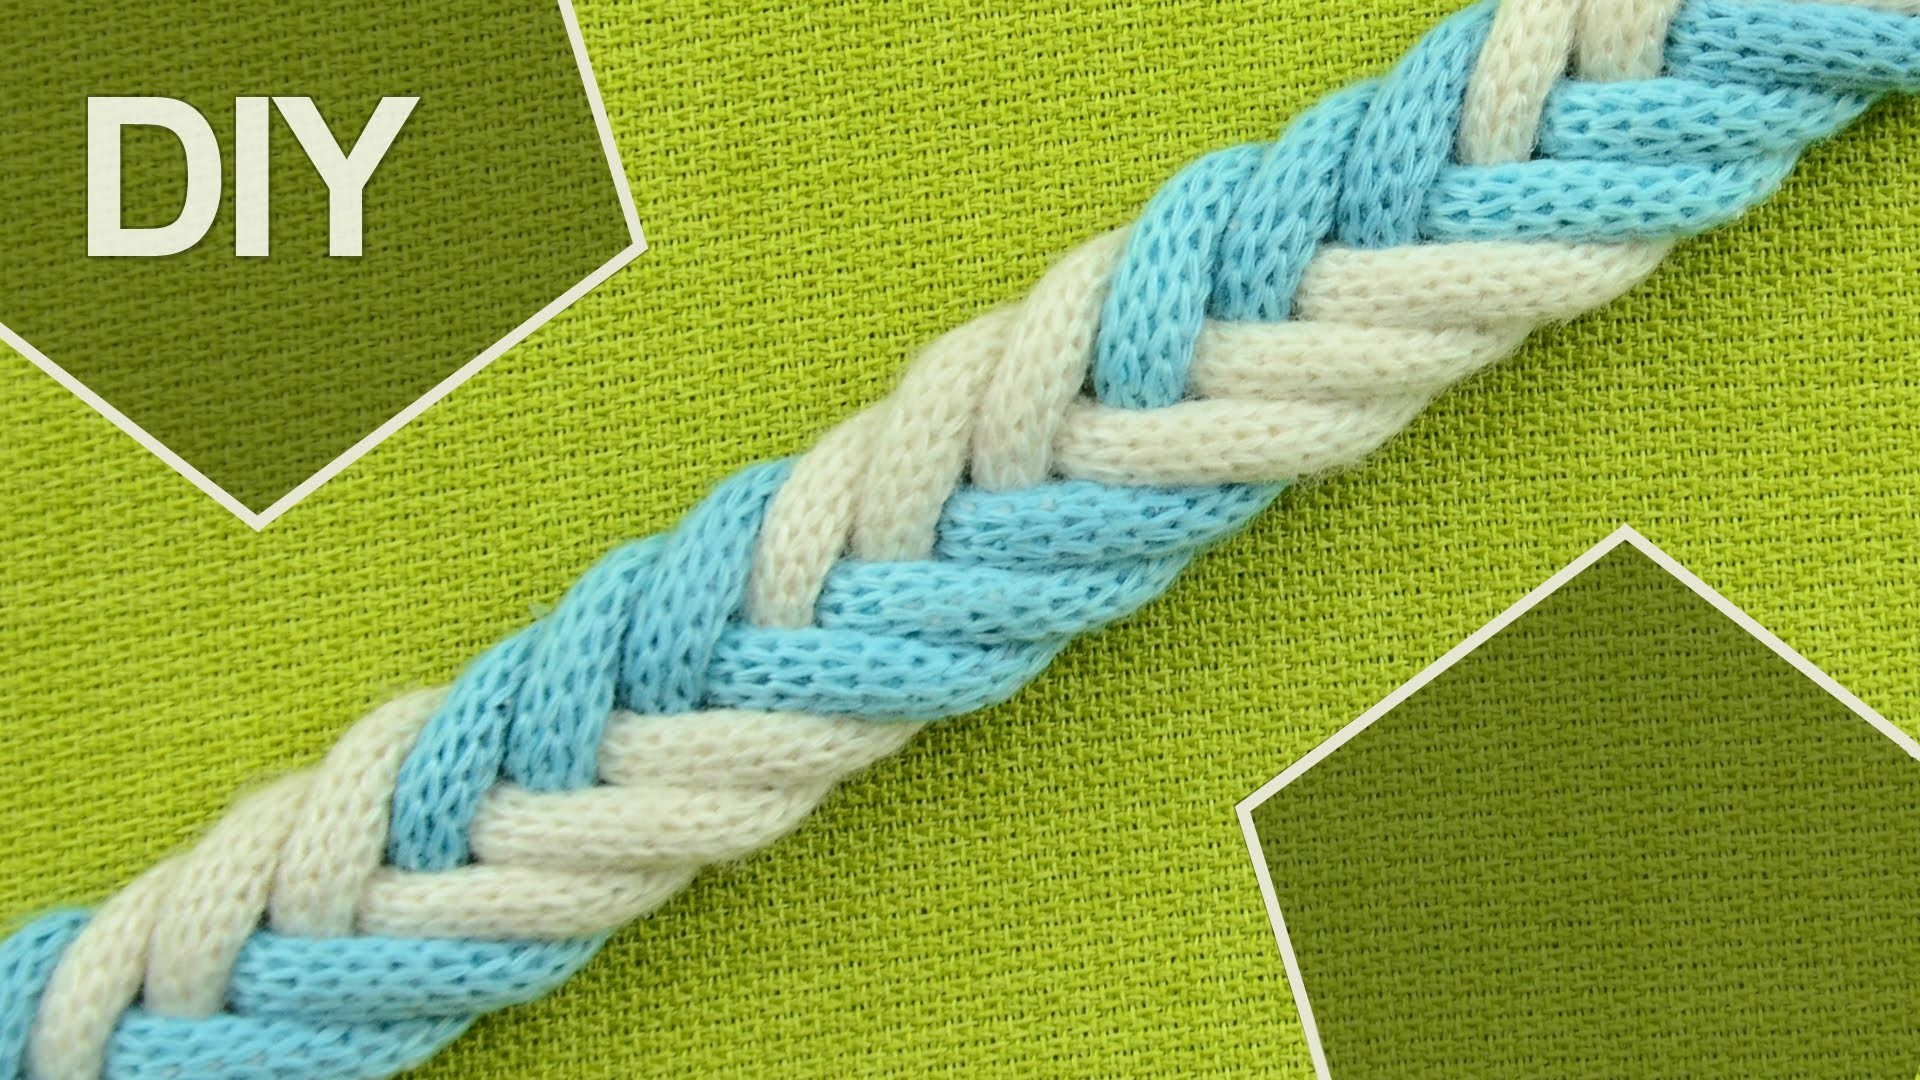 DIY: Easy 6-Strand Flat Arrow Braid in 2 colors